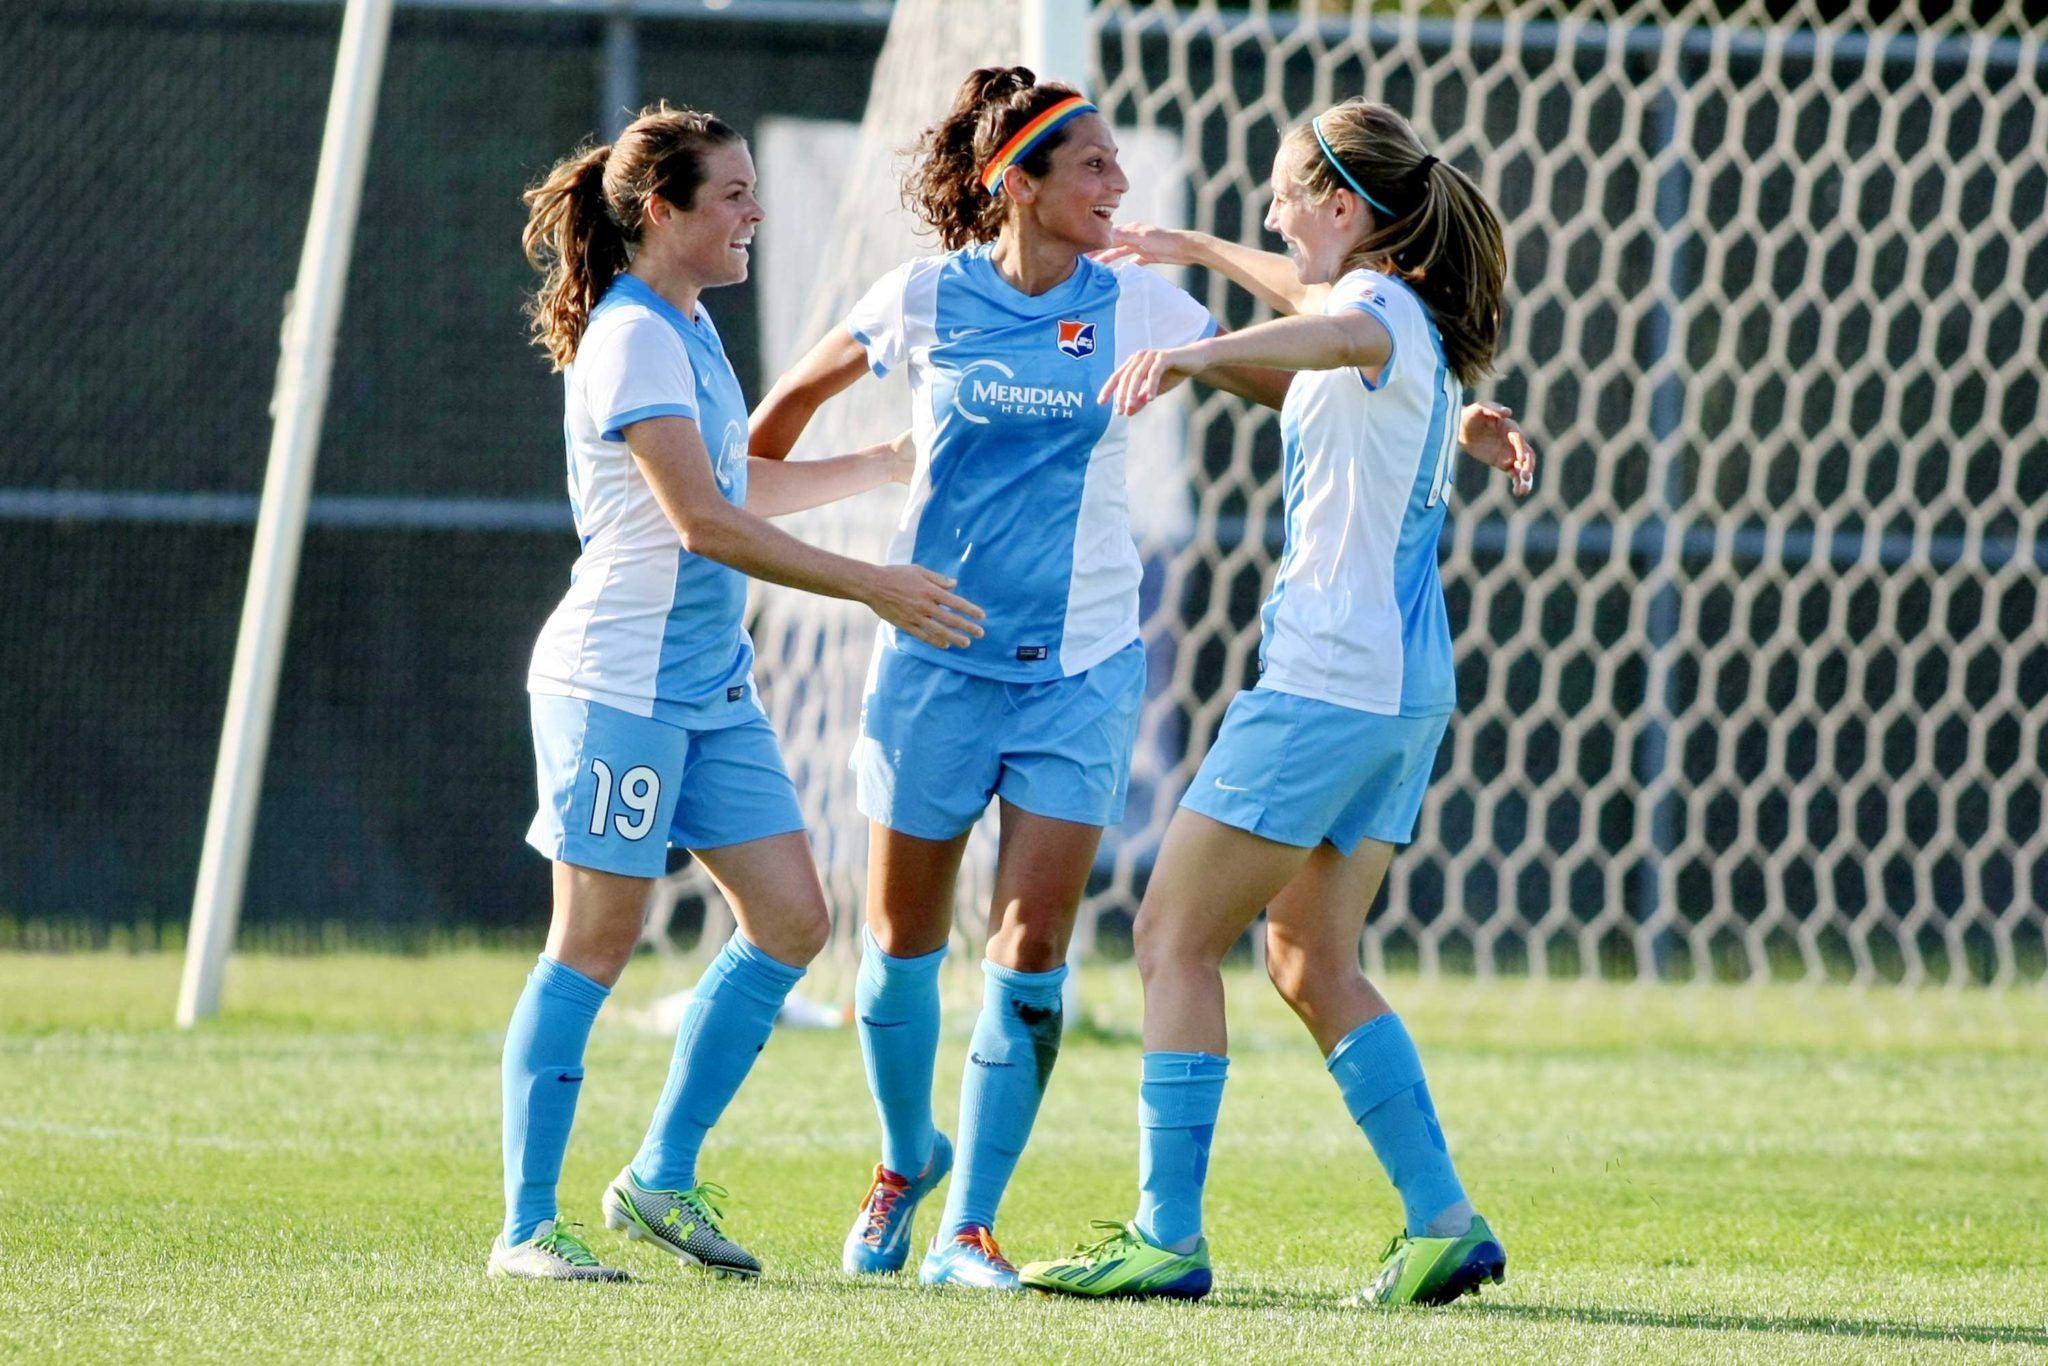 Nadia Nadim scored the game's only goal to lift Sky Blue past Portland. (Photo Courtesy Robyn McNeil)